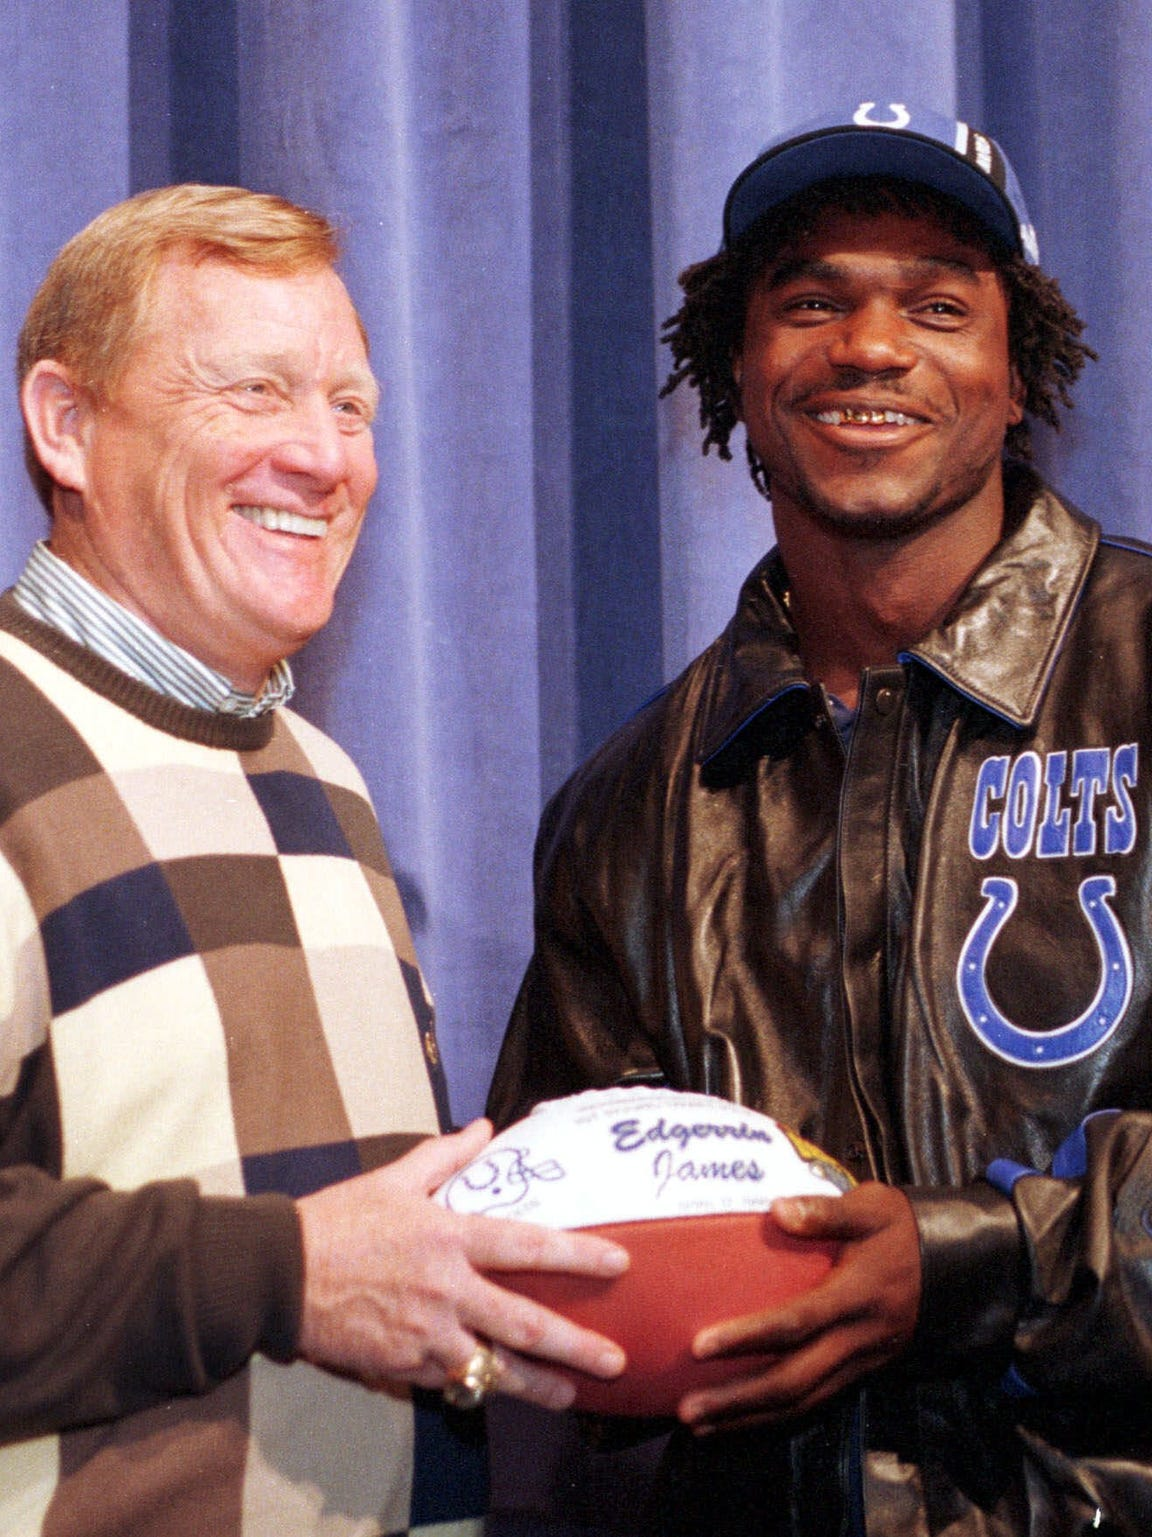 Running back Edgerrin James (right) is presented with